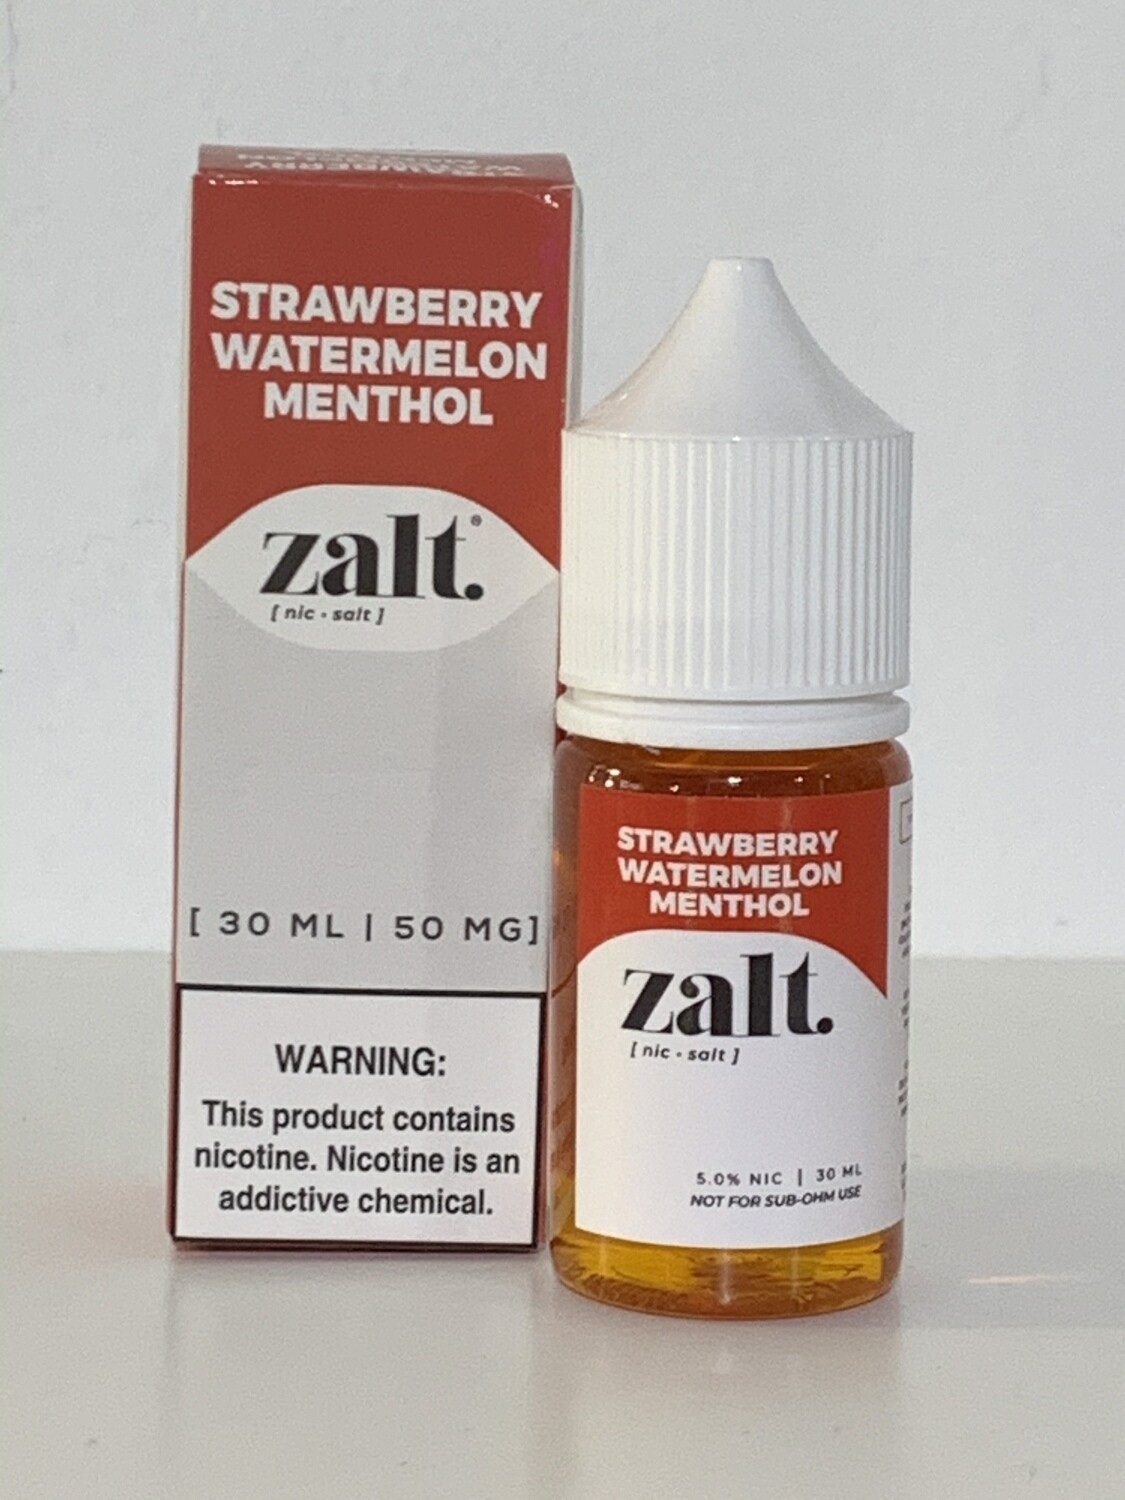 Zalt 50mg Straw/Wat/Mint 30ml